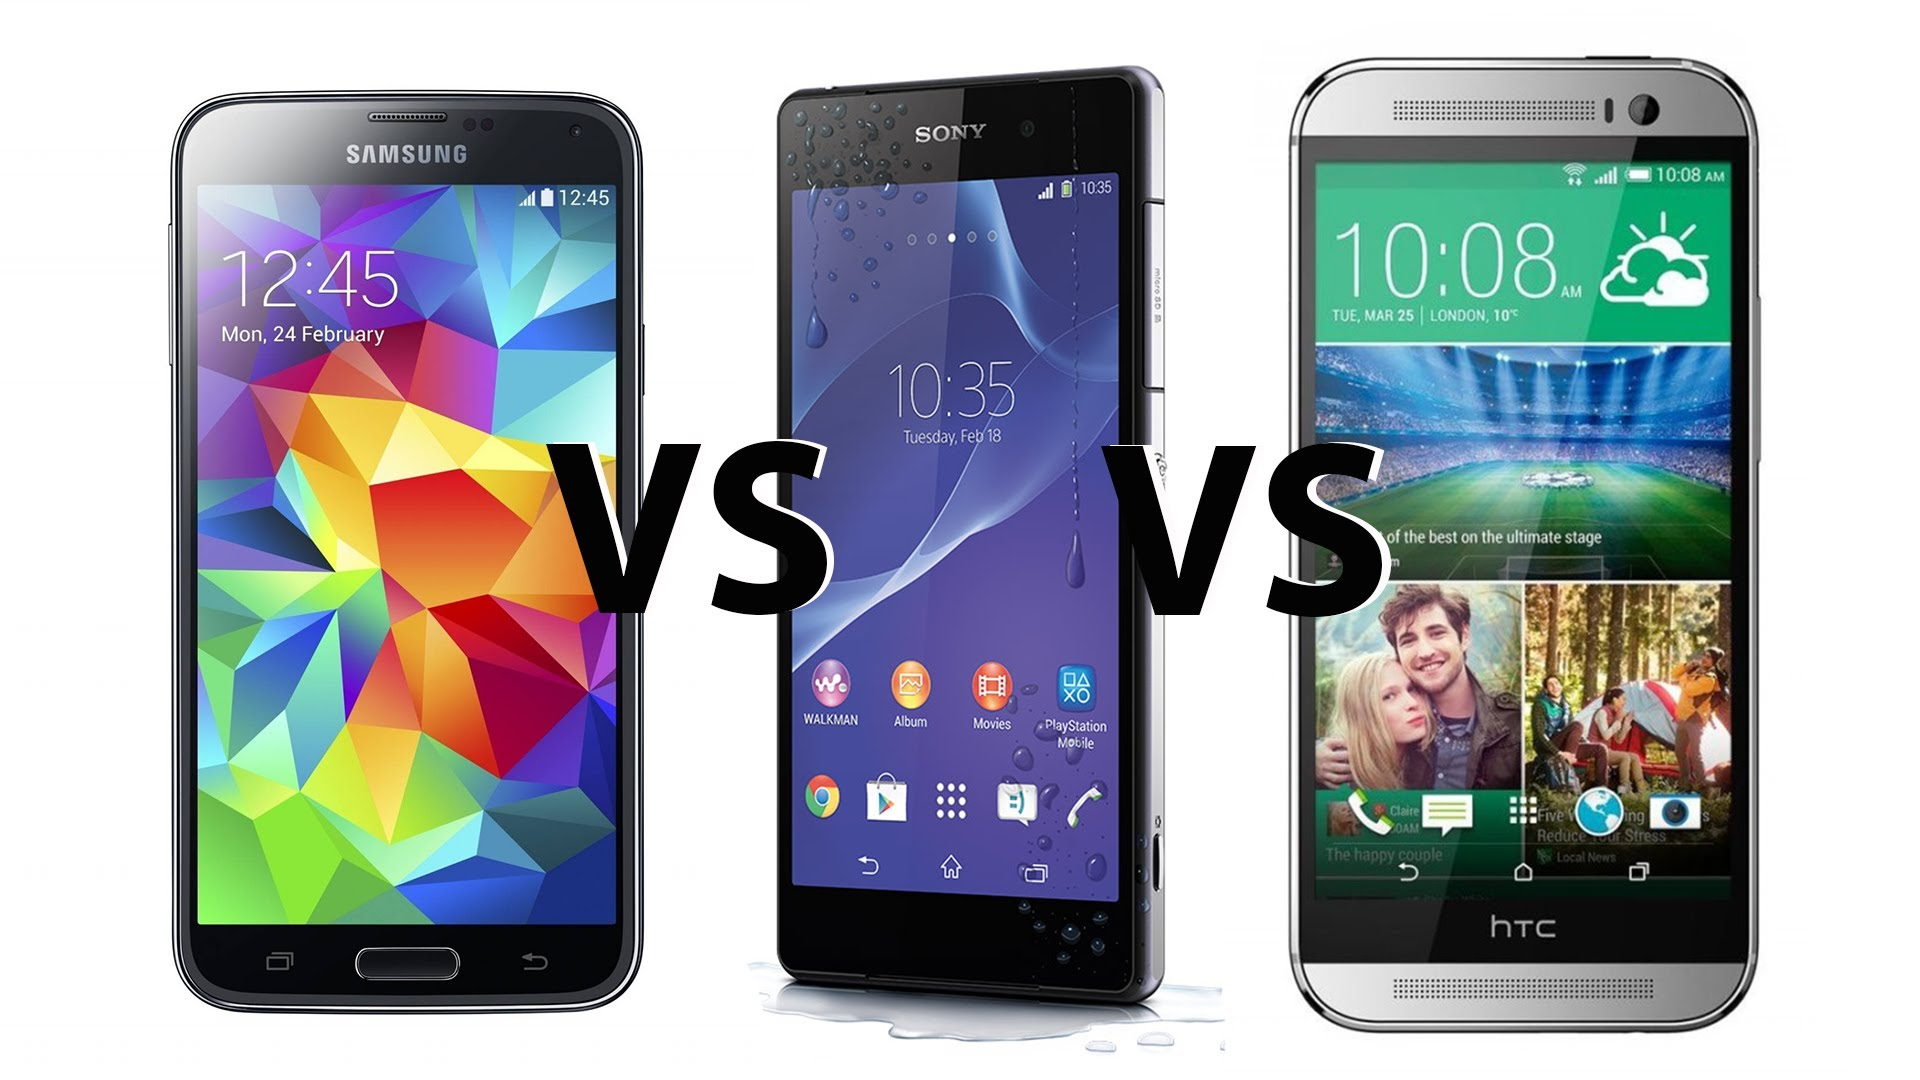 Xperia Z2: Flagship Display Face-off!